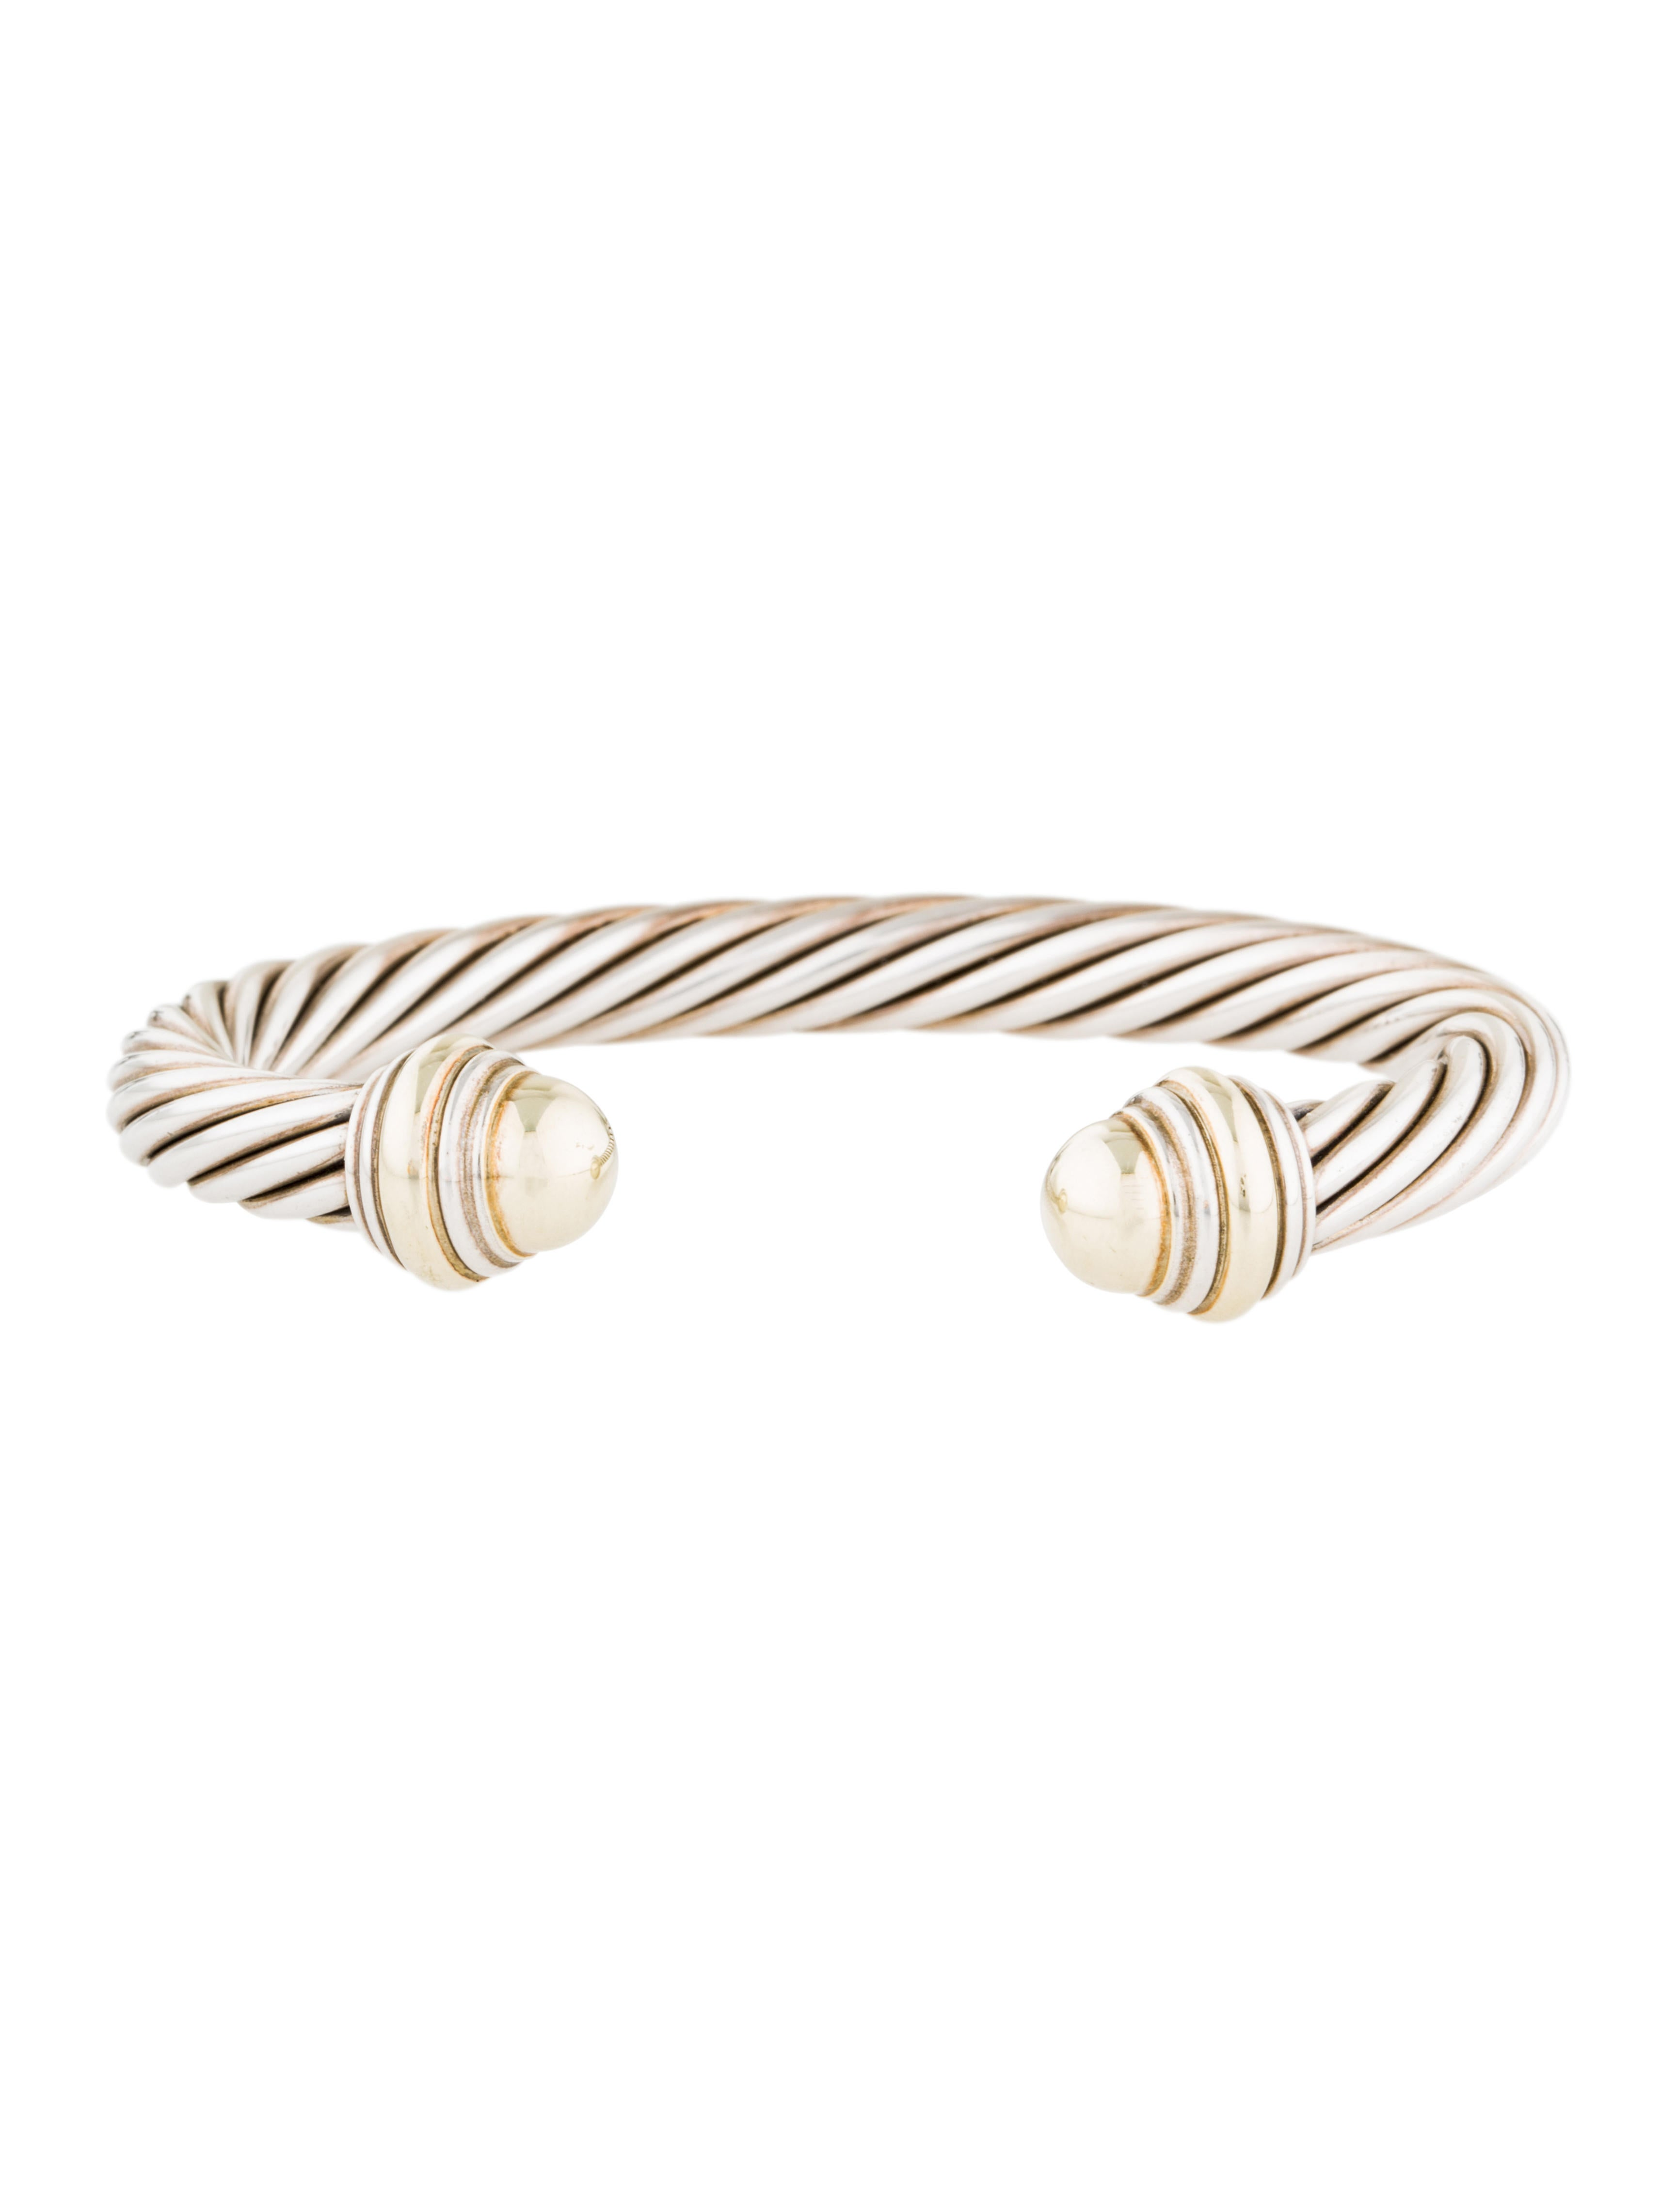 David yurman two tone cable classic bracelet bracelets for David yurman inspired bracelet cable